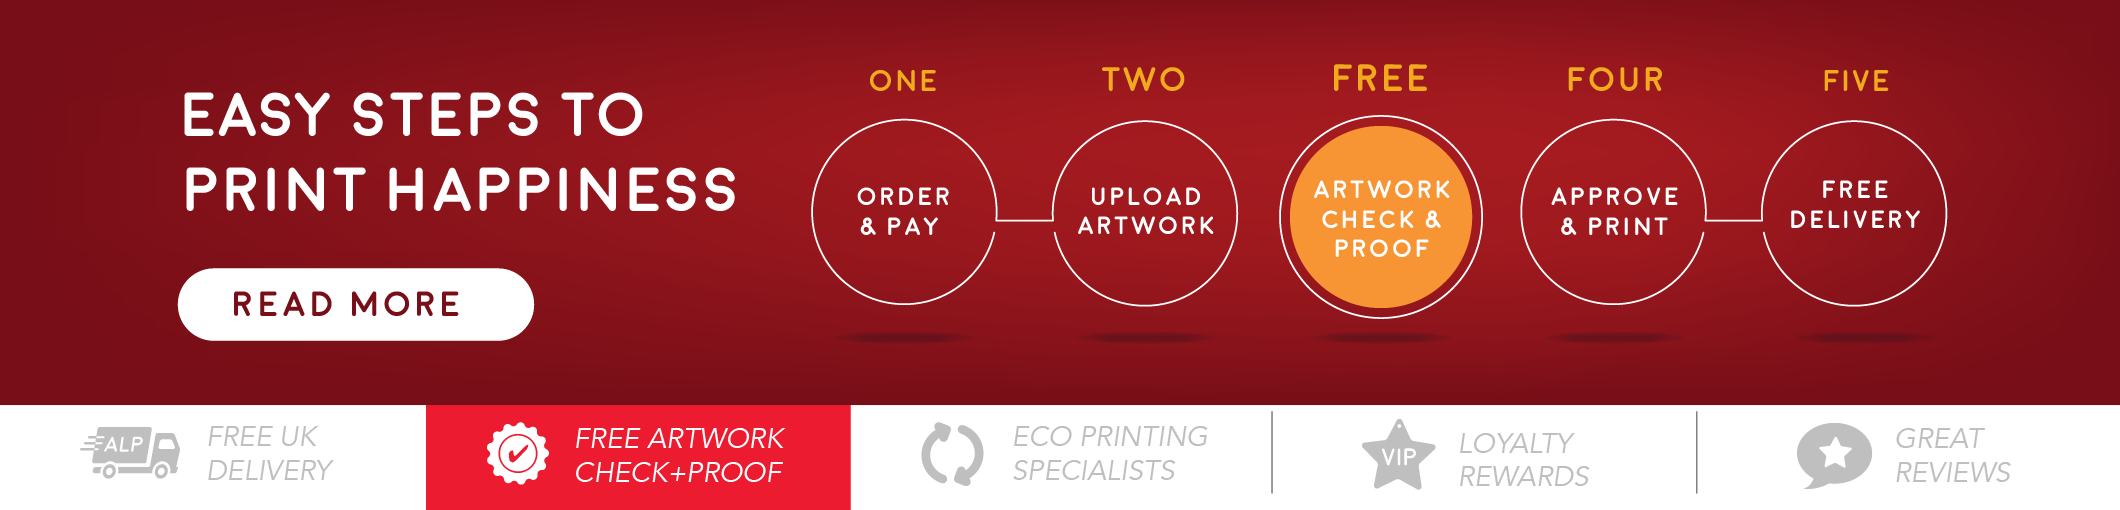 Easy online ordering and printing